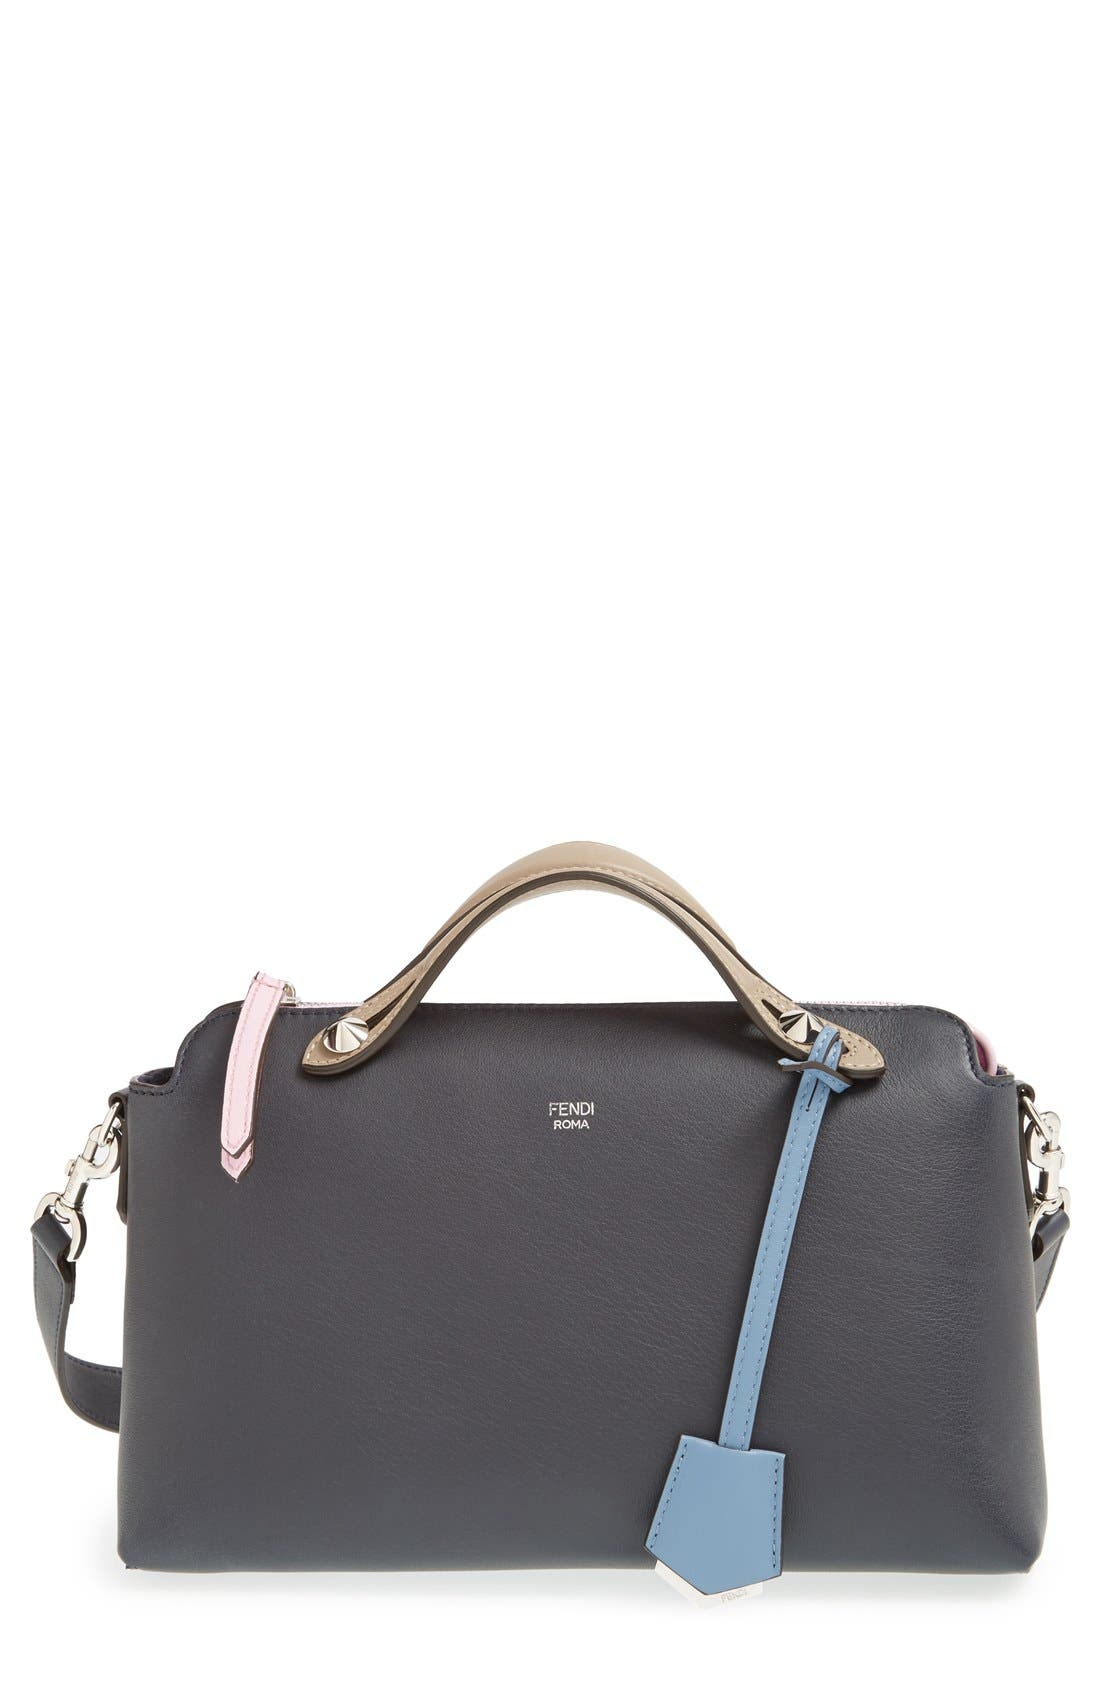 Alternate Image 1 Selected - Fendi 'Small By the Way' Colorblock Leather Shoulder Bag